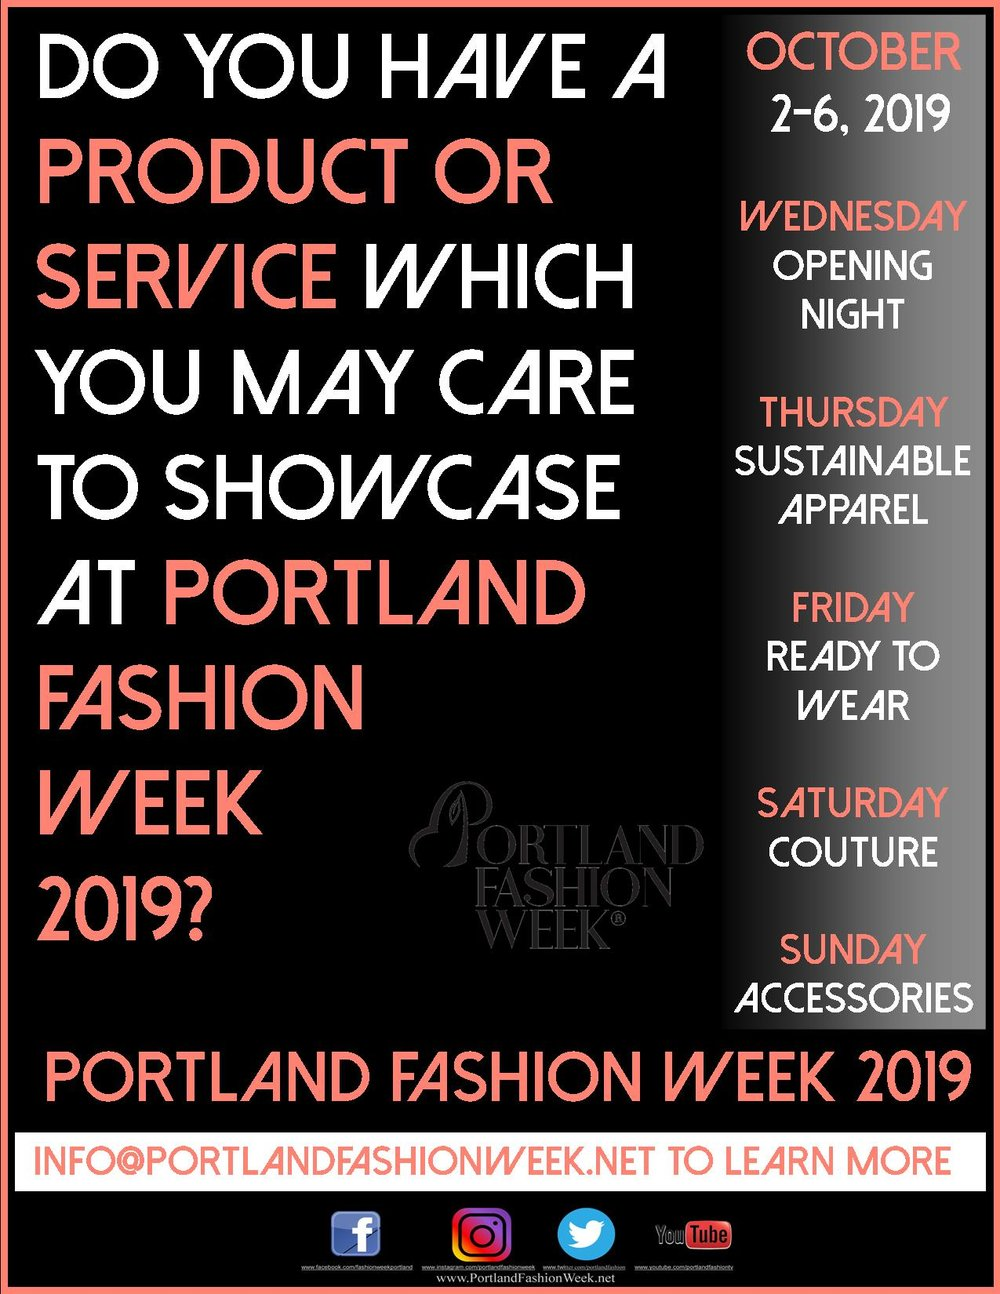 Product Placement - Do you have a product or service which you care to showcase along side of the world's most sustainable, eco-chic and only carbon negative fashion week? Gift Bag inclusions? A new product launch? Street teams? Shall we converse further and explore this option together? National and international press are focusing their attention upon us now, and the early business catches the headlines!